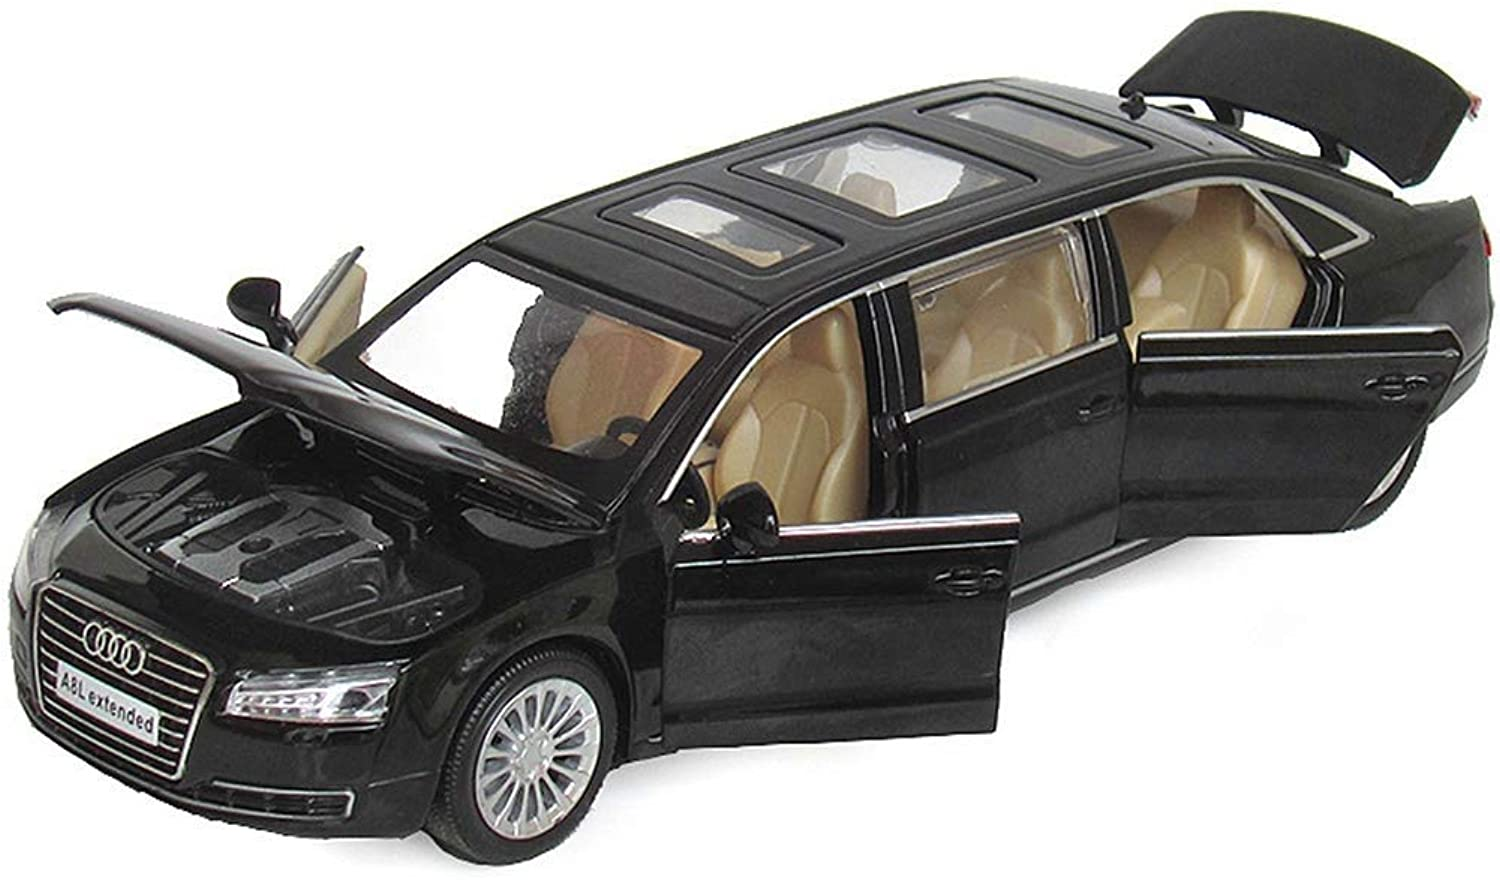 KKD Scale Model Simulation Vehicle Audi Car Model A8L Extended Car Model 6 Door Sound And Light Pull Back Simulation Alloy Car Model Ornaments To Send Boys Gifts ( color   Black )